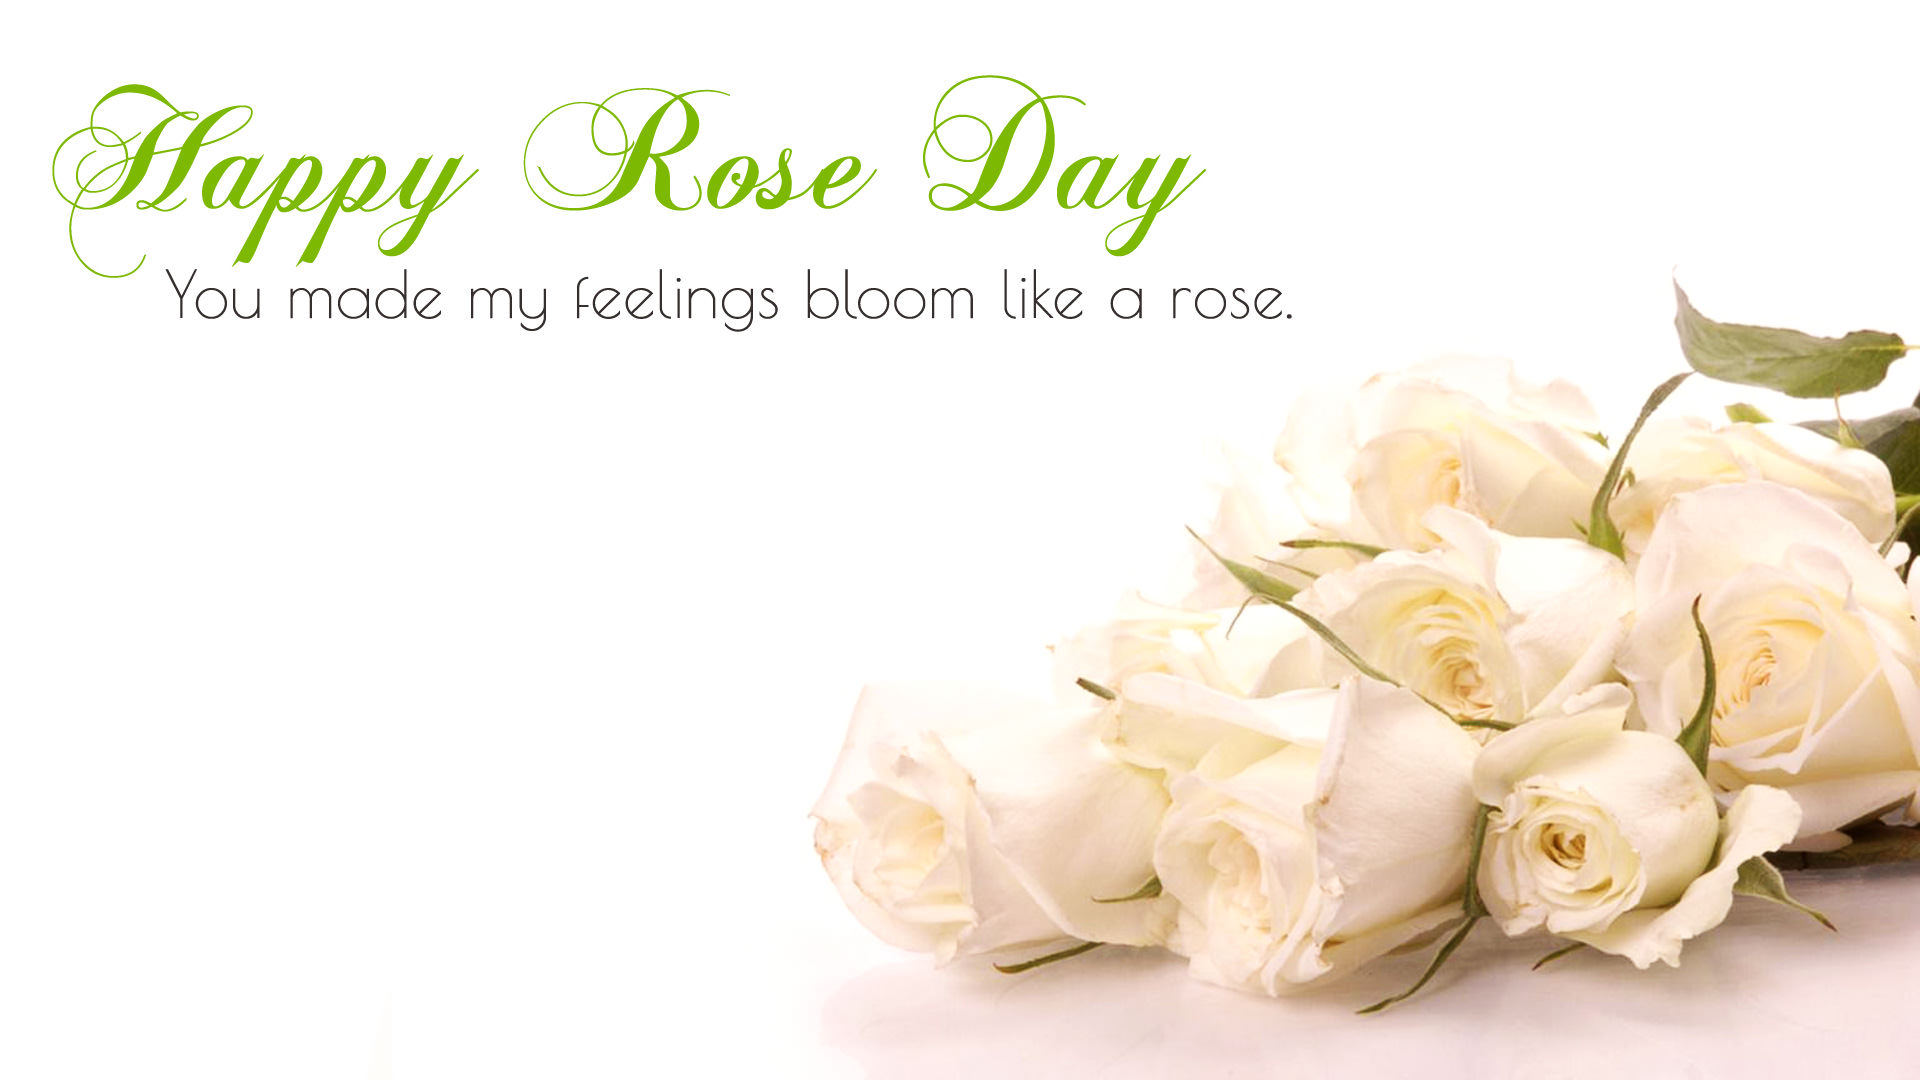 White Valentine Day Roses for 7th Feb Rose Day